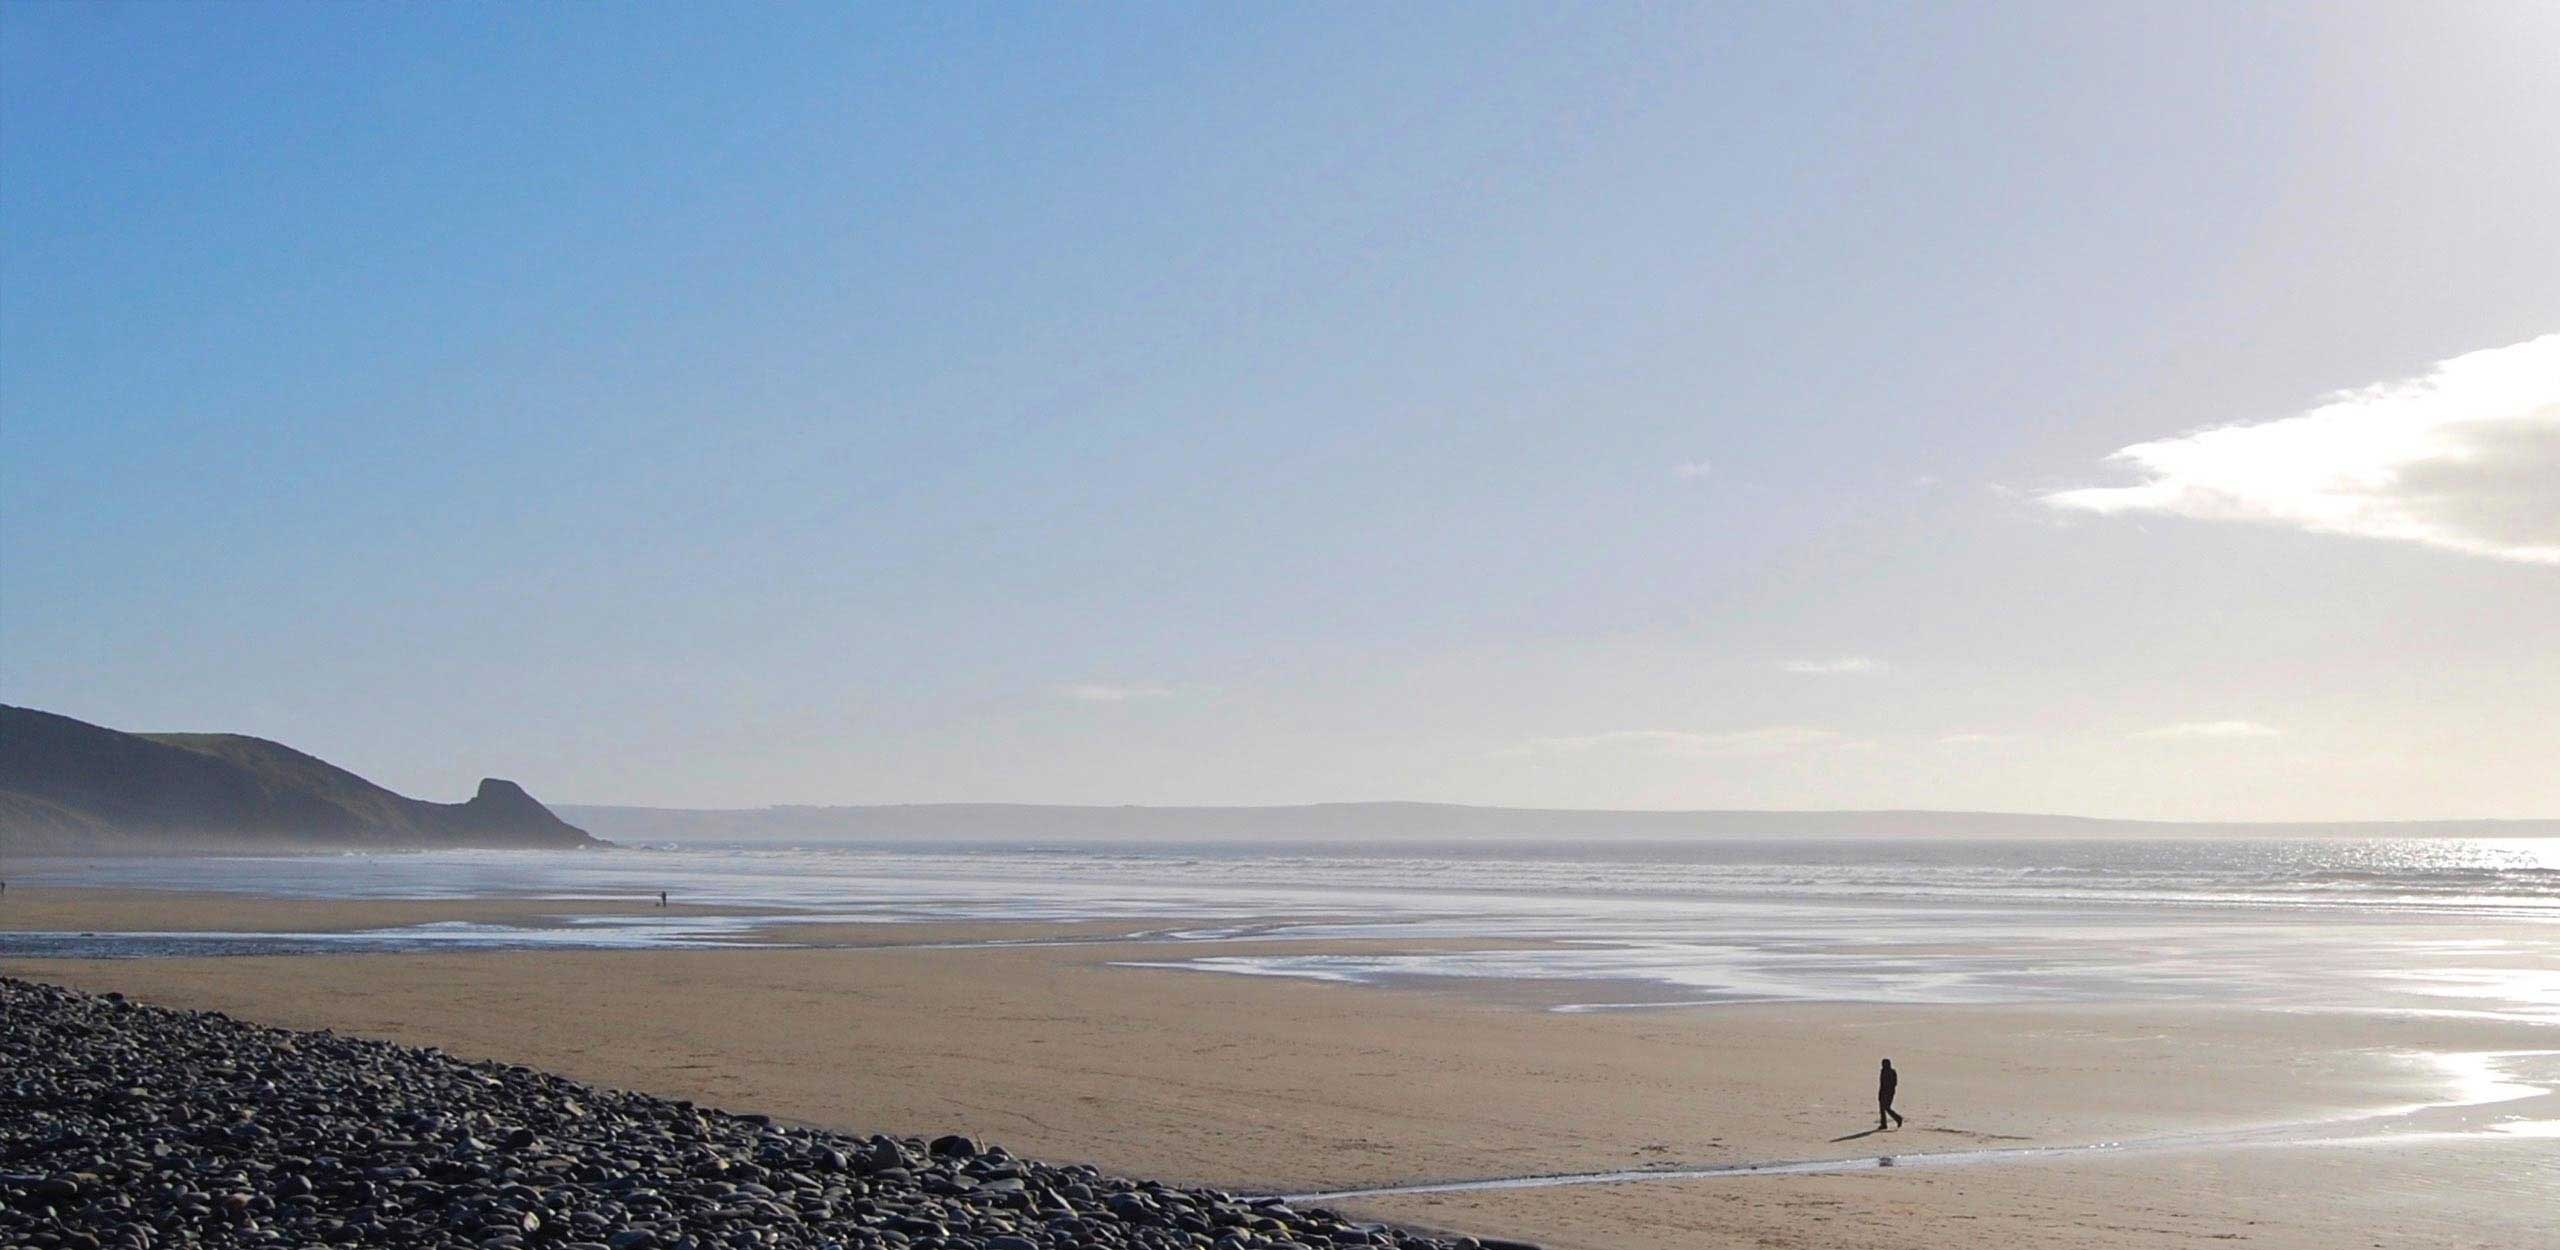 Newgale beach on Pembrokeshire's west coast